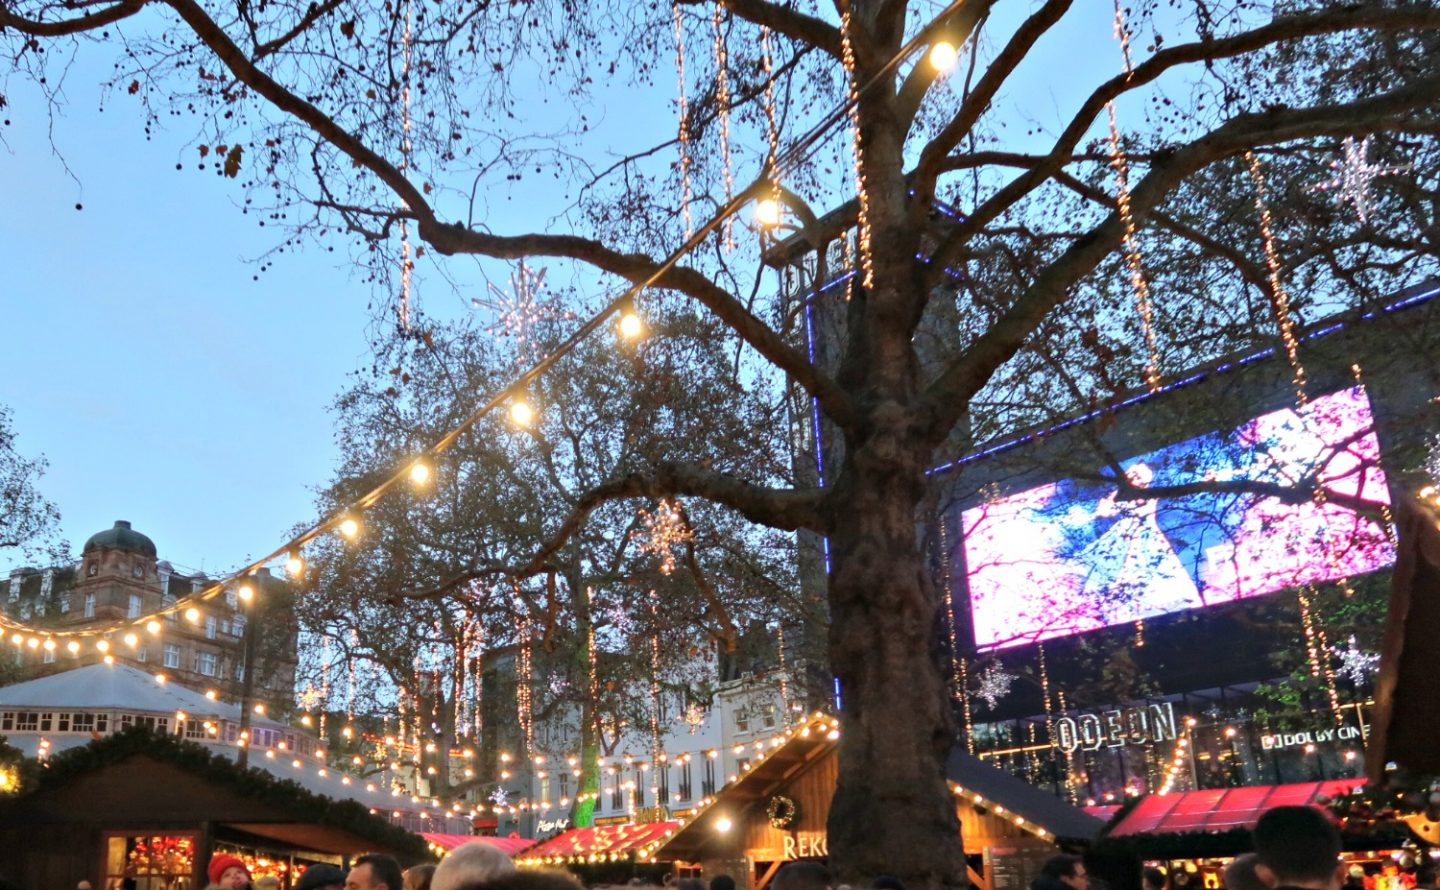 Leicester Square for Christmas - Odeon